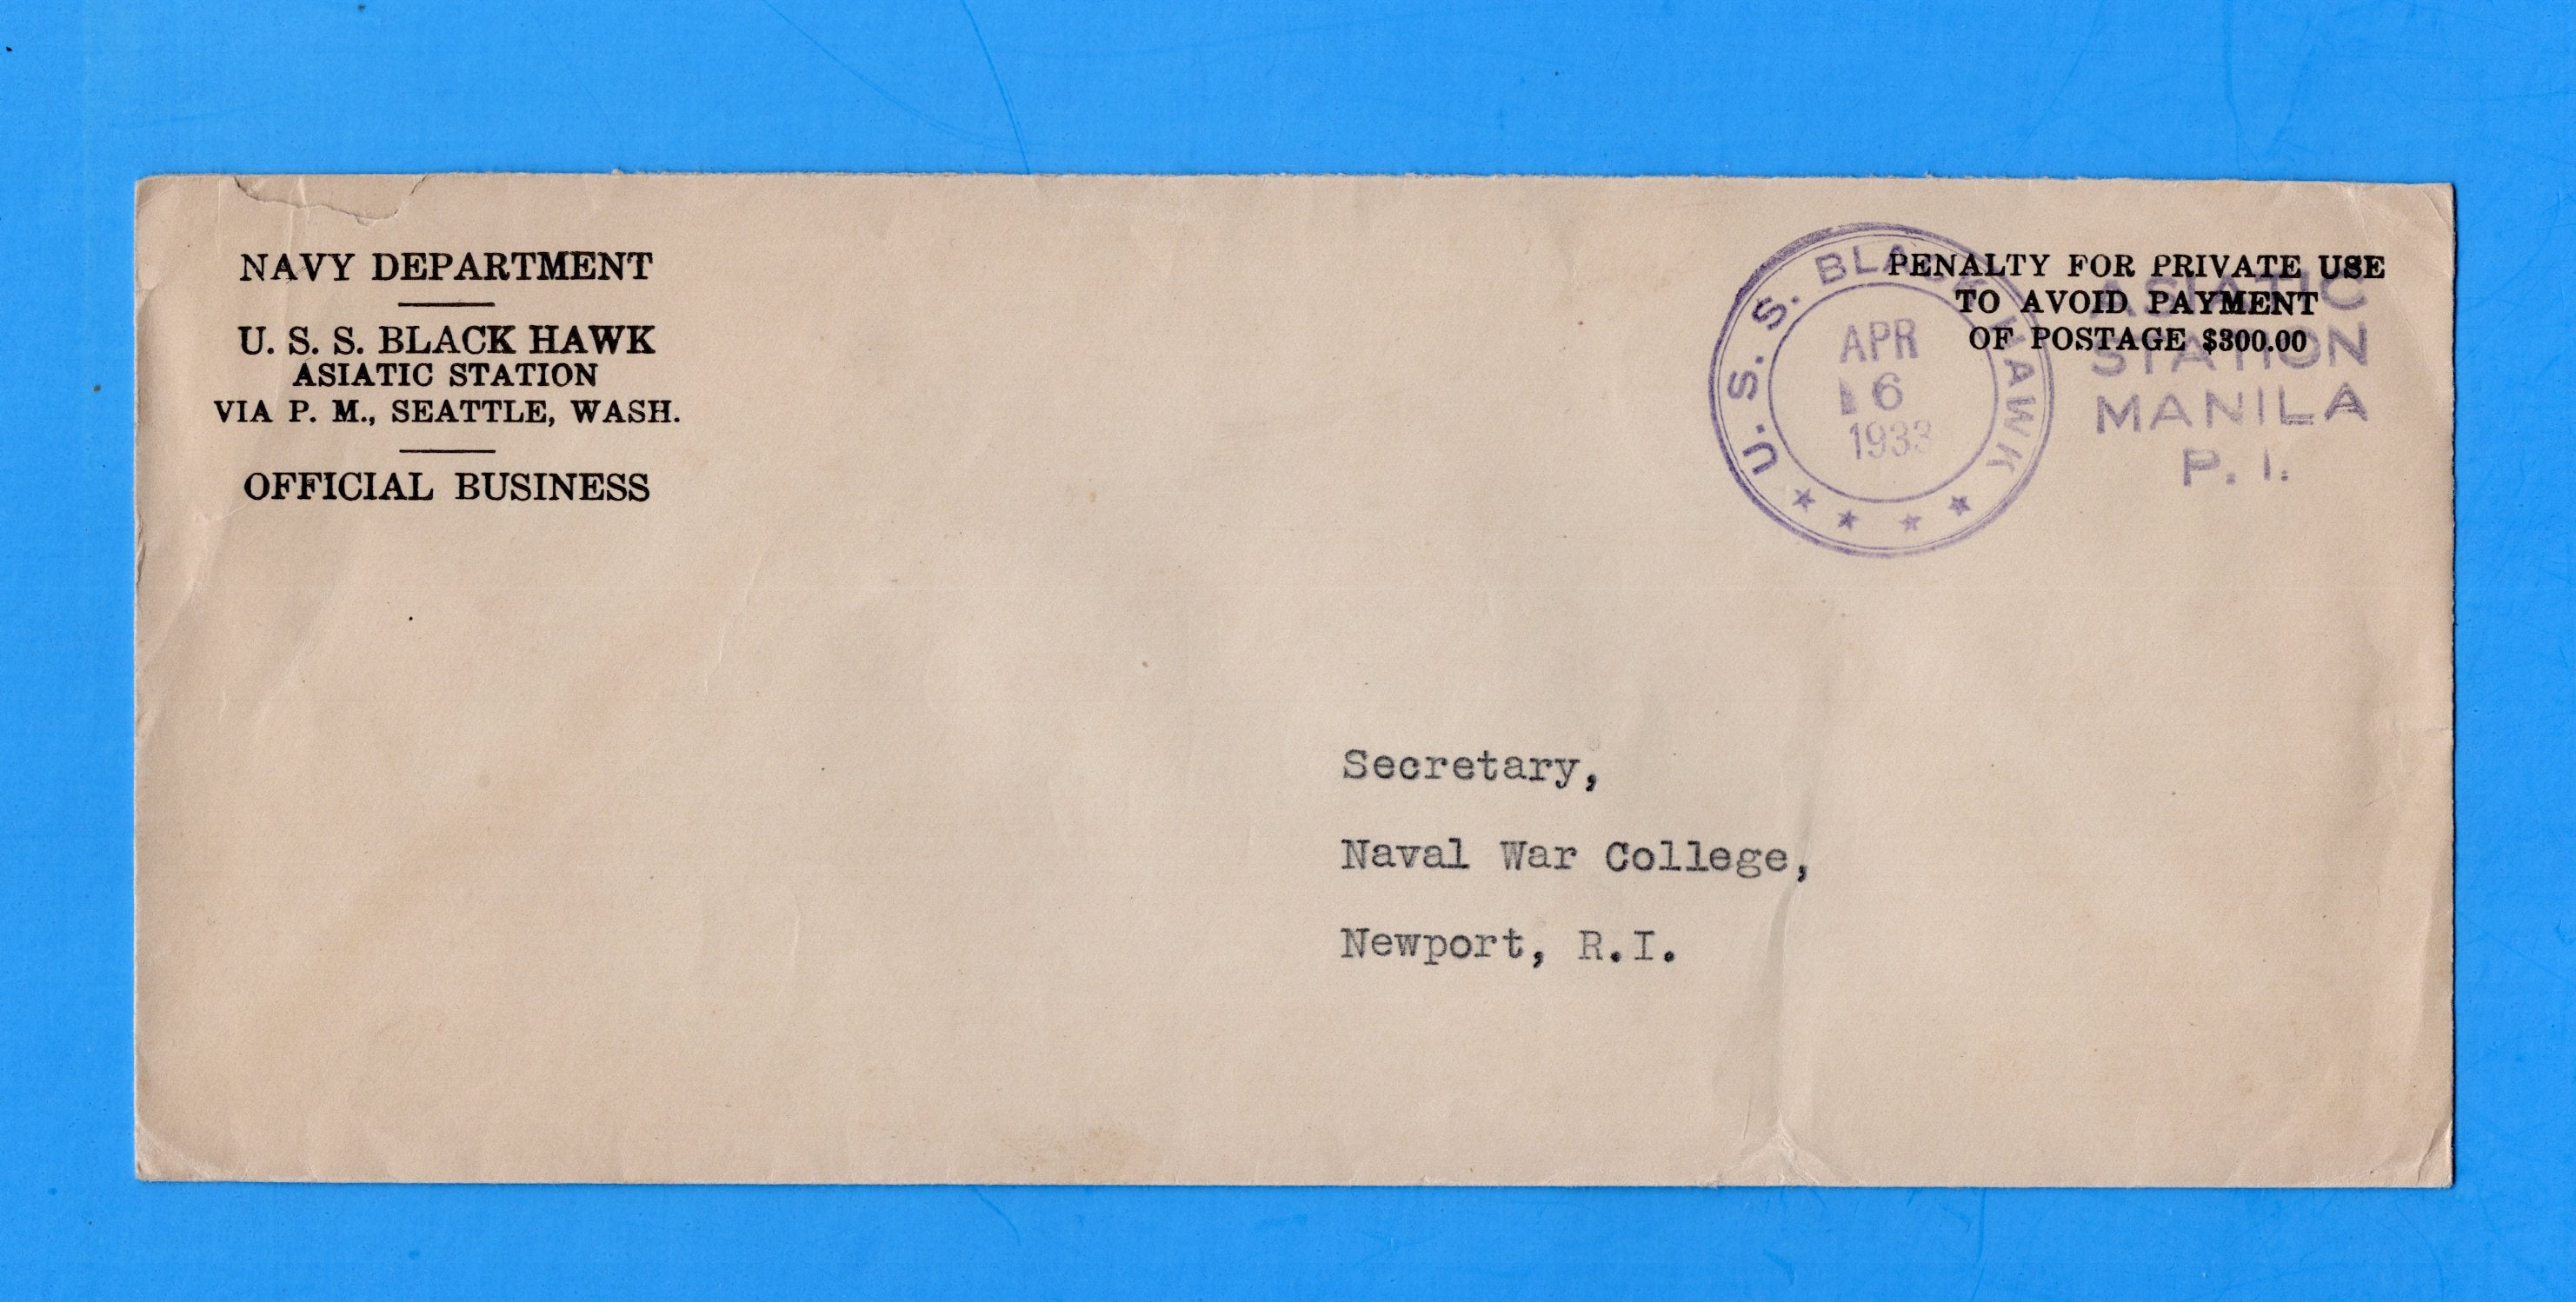 USS Black Hawk AD-9 Navy Department Official Mail Asiatic Station Manila April 6,1933